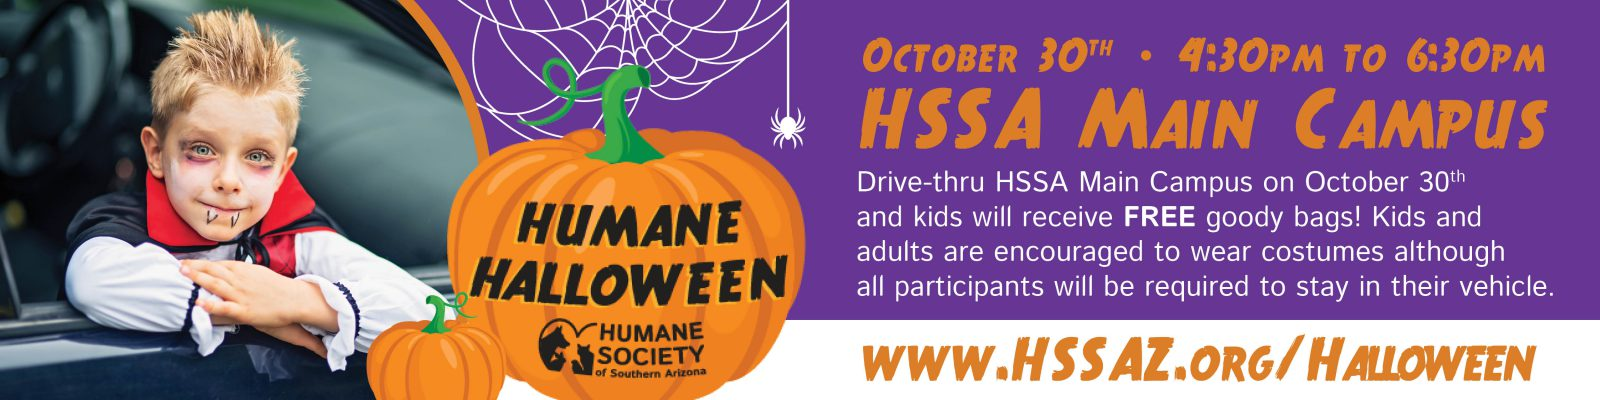 Humane Halloween- Email Banner